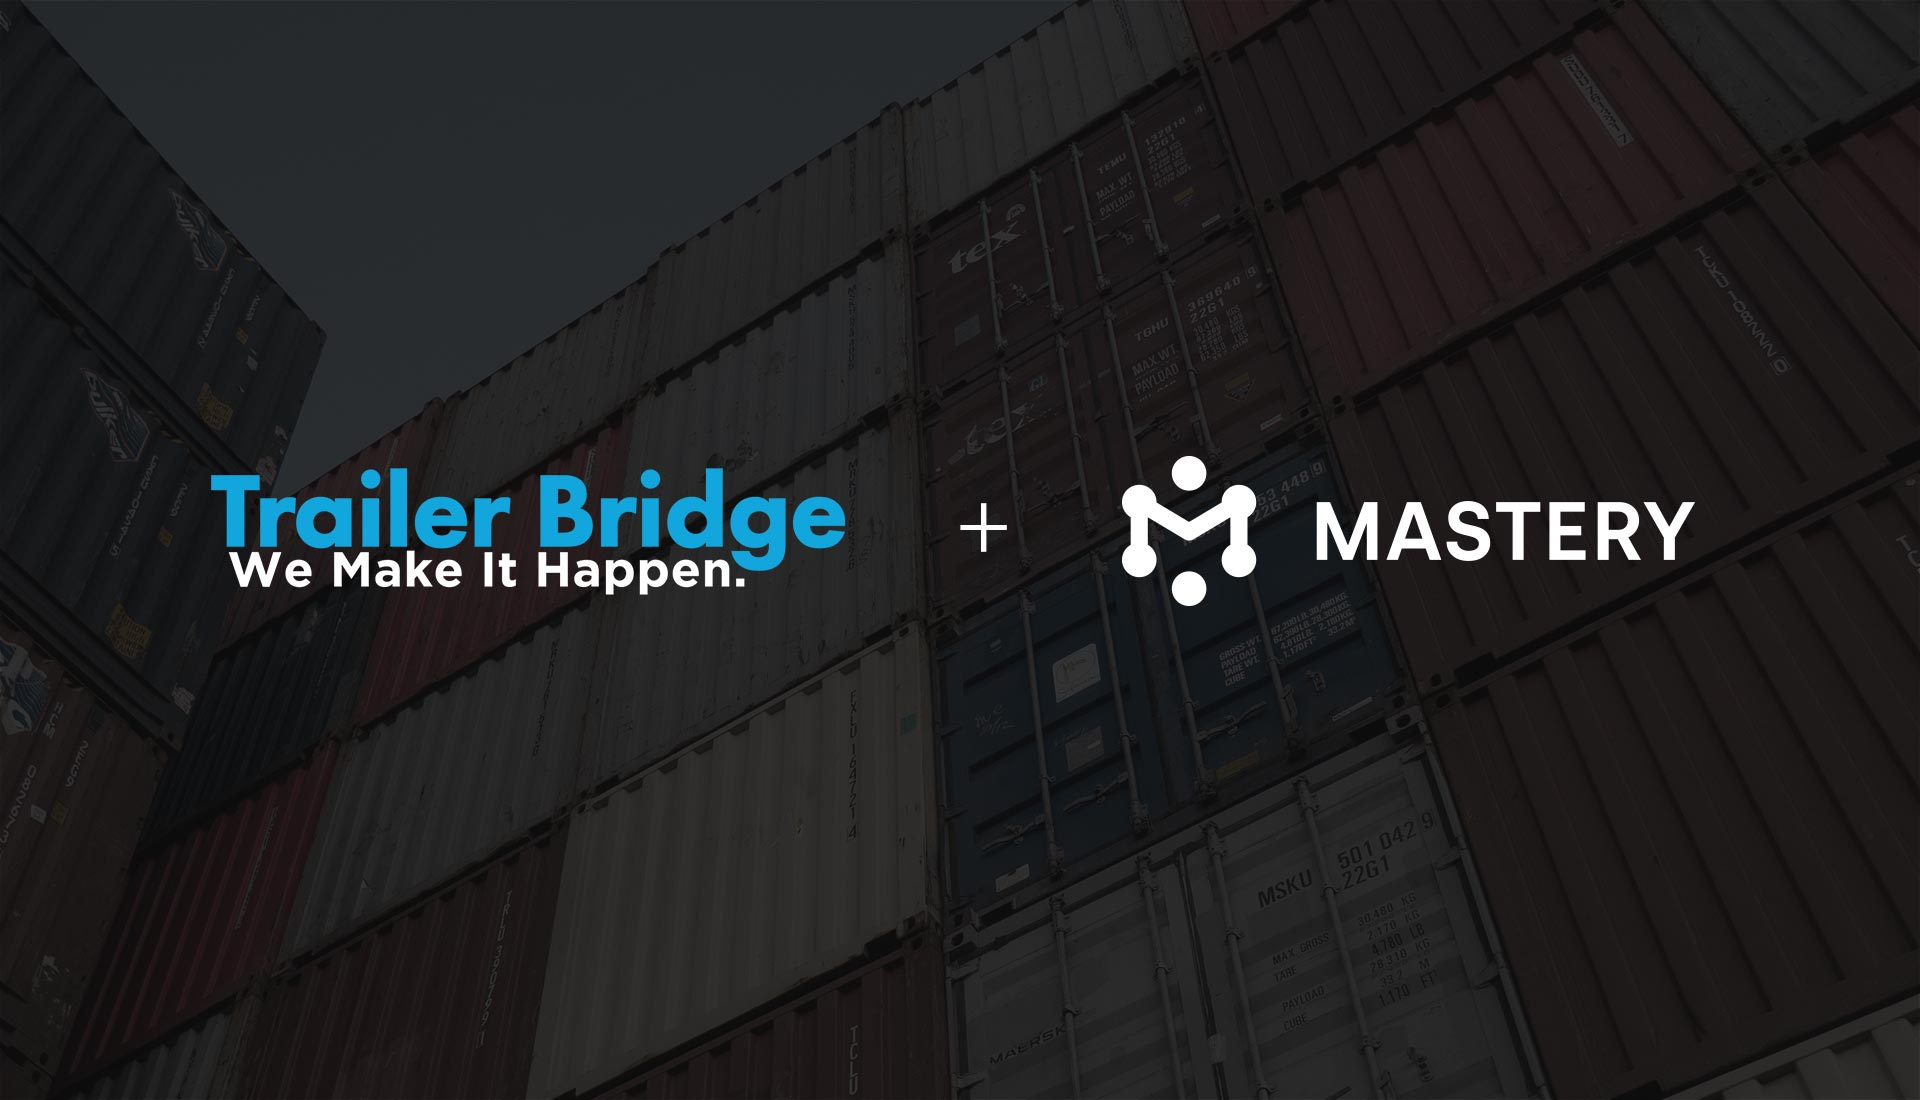 Trailer Bridge Announces Partnership with Supply Chain and Logistics SaaS Firm Mastery Systems